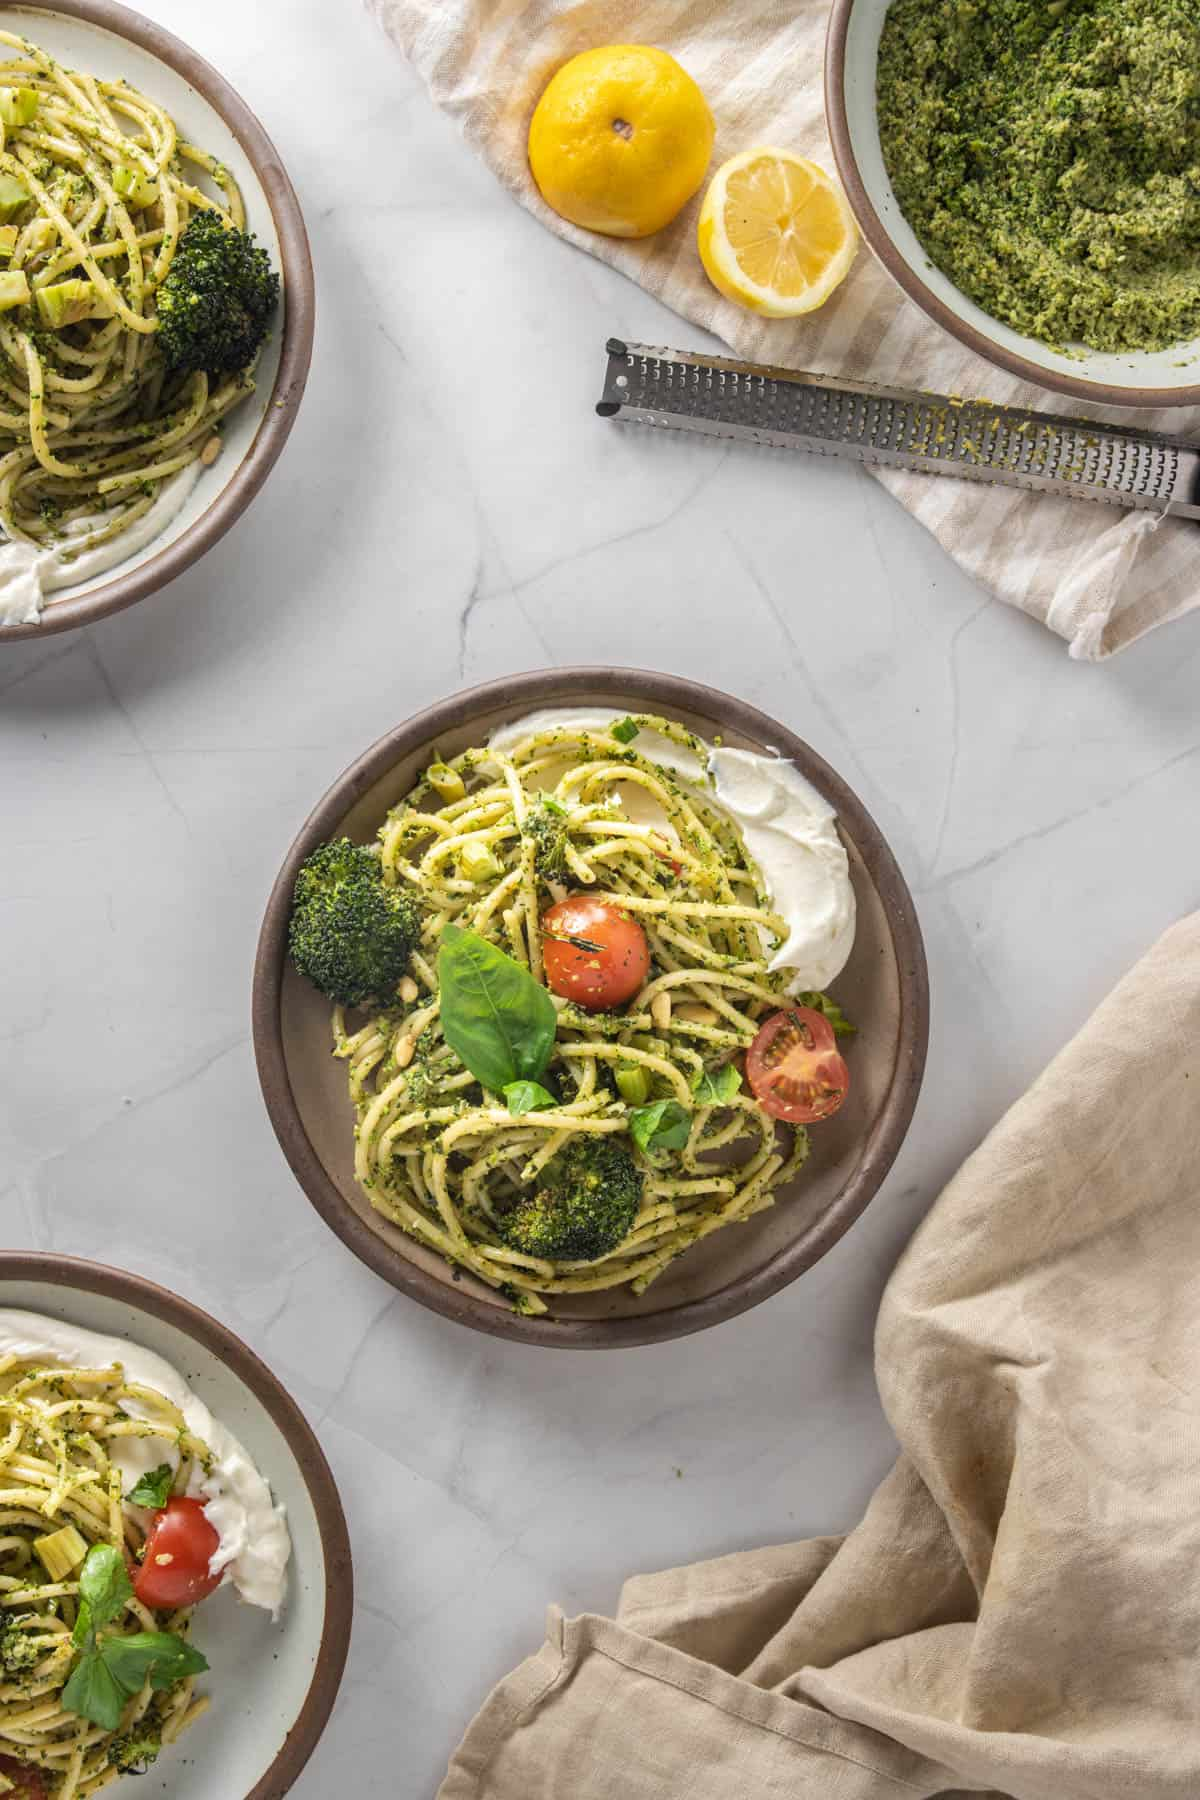 Plate of pasta with whipped ricotta in the center, several other plates and extra pesto in the background